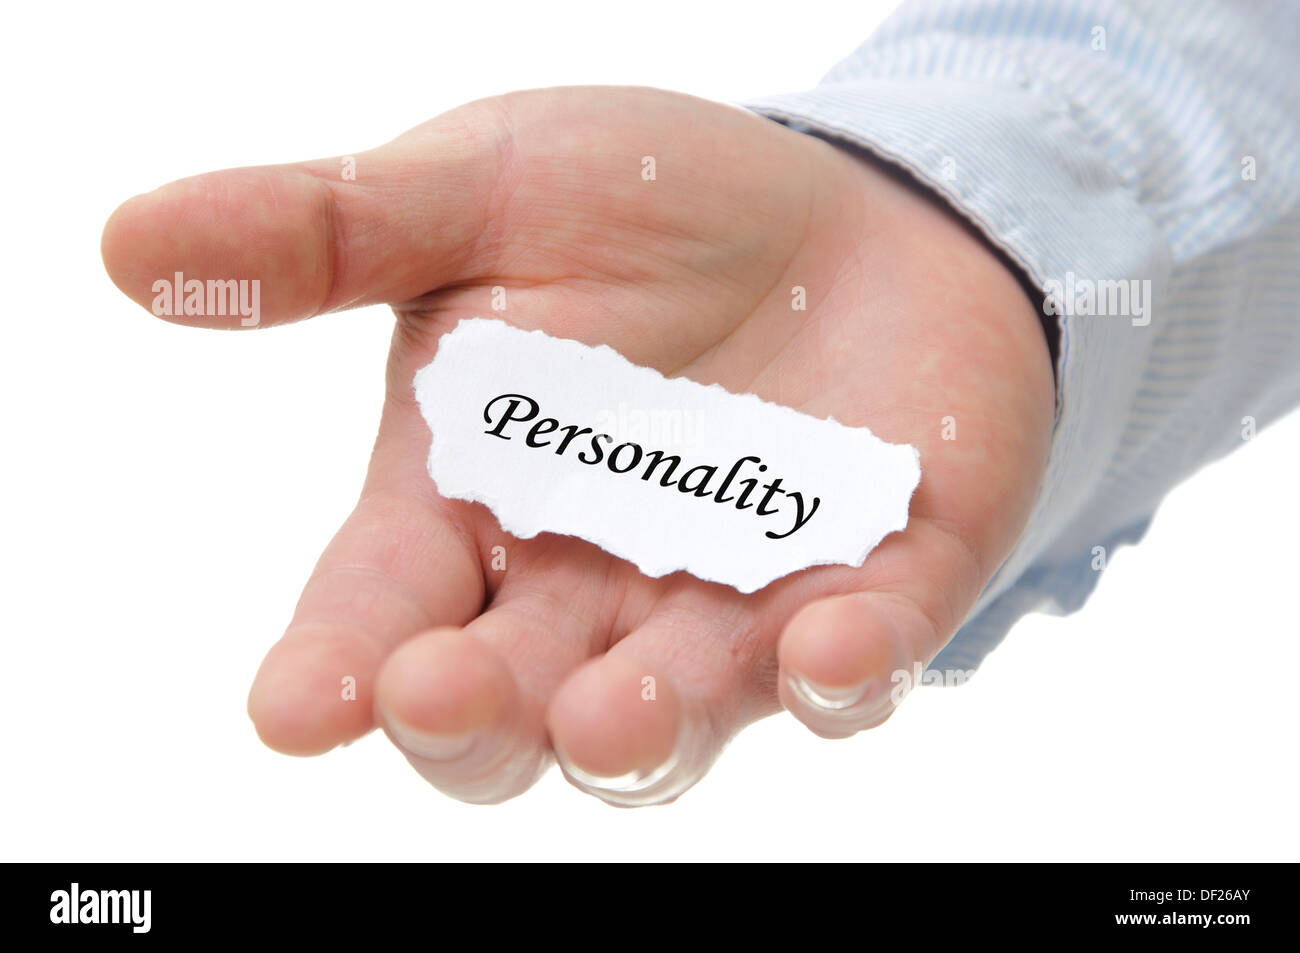 Personality - Note Series - Stock Image